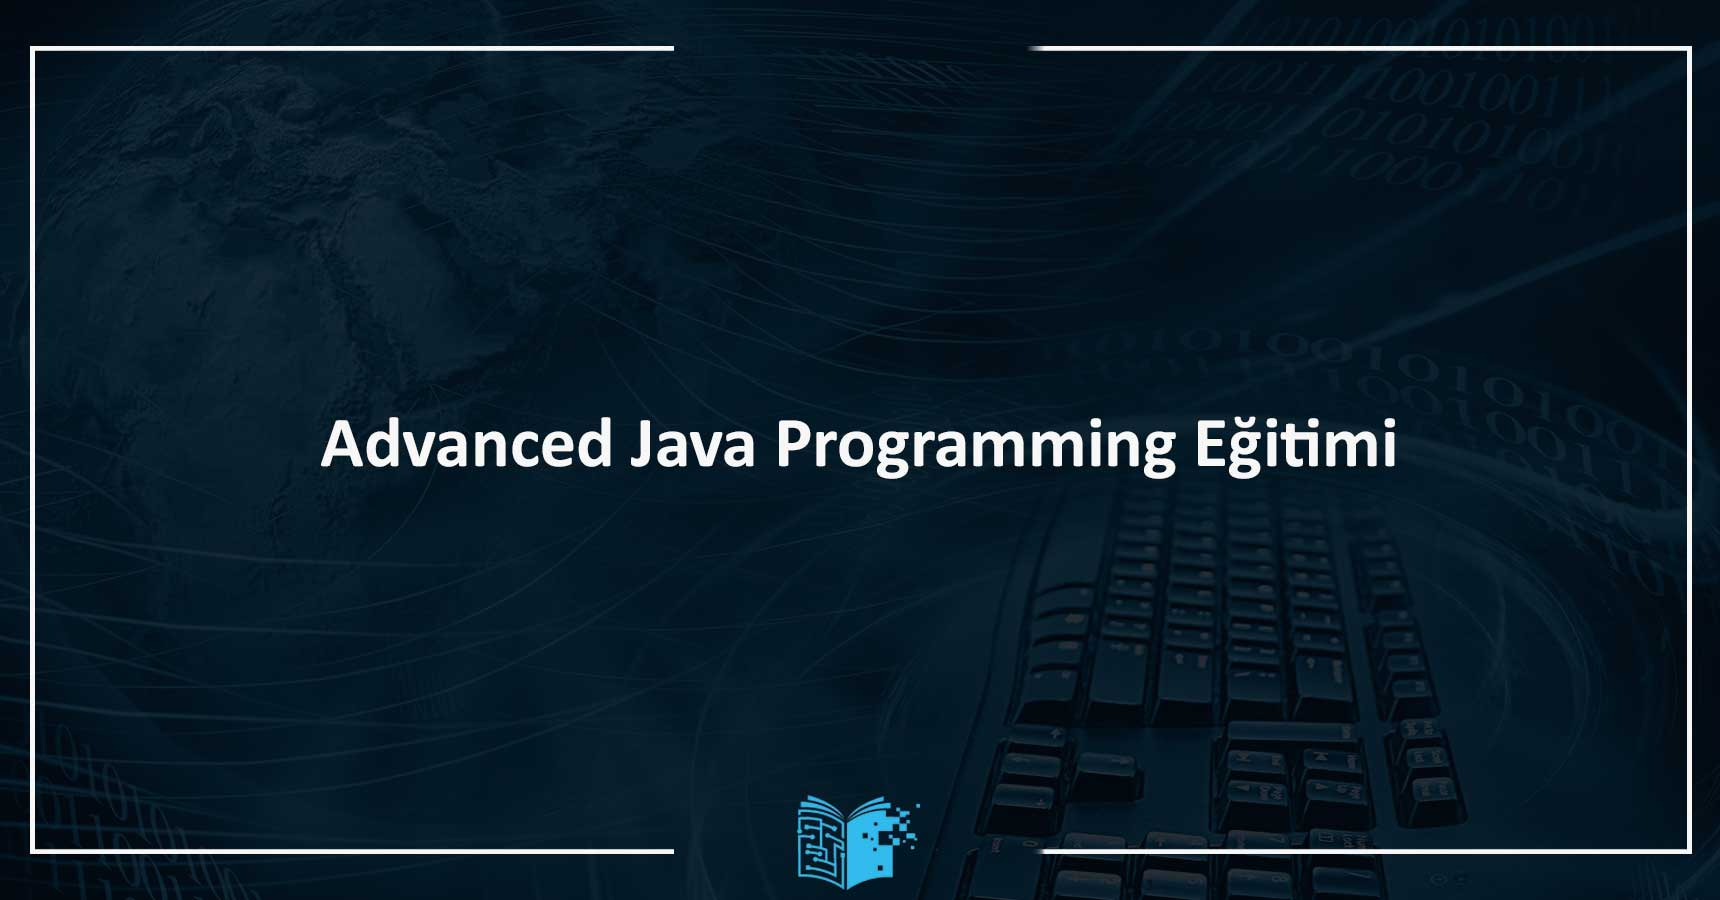 Advanced Java Programming Eğitimi